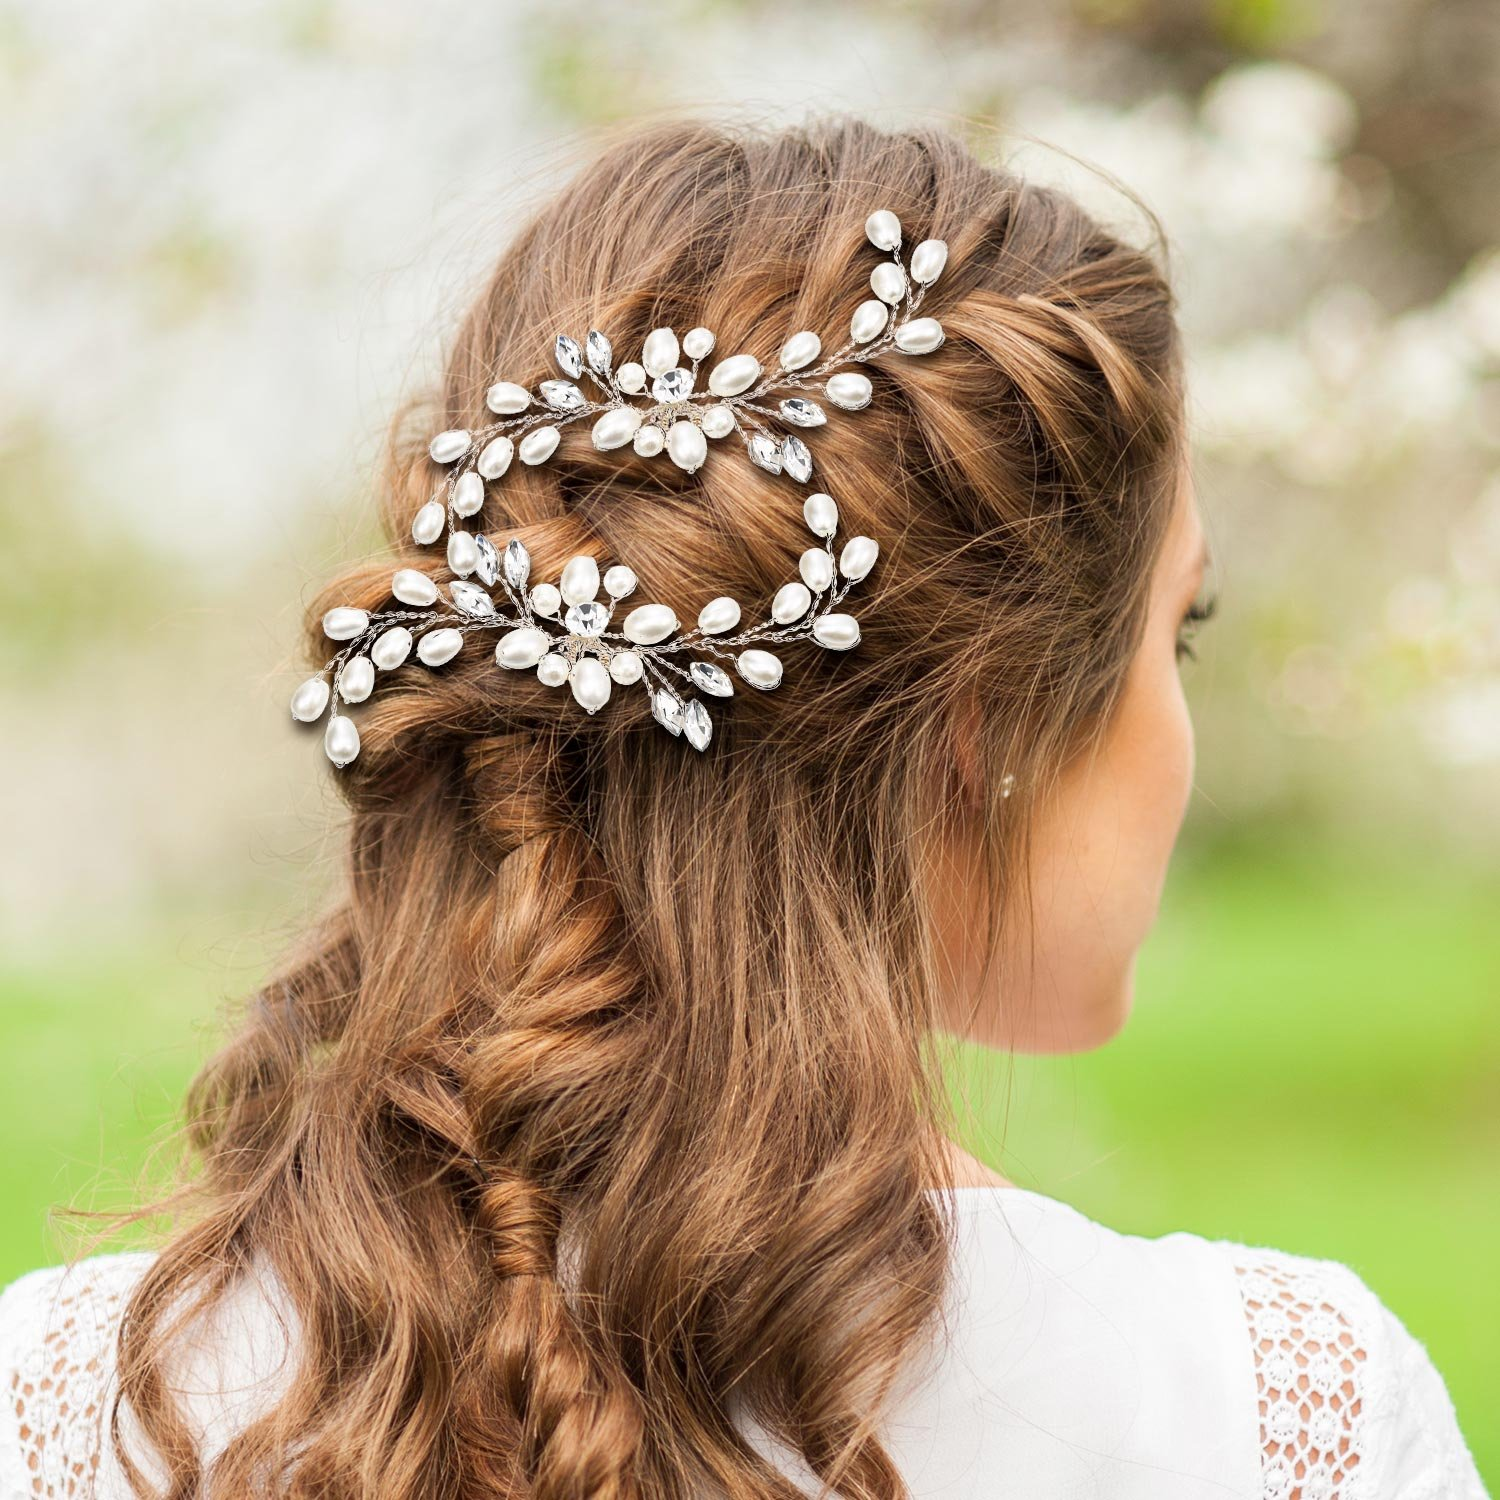 Gejoy 3 Pieces Elegant Wedding Crystal Hair Accessories, Leaves Flowers Hair Comb and 2 Pieces Rhinestone Bridal Hair Pins for Women, Bride or Bridesmaid by Gejoy (Image #5)